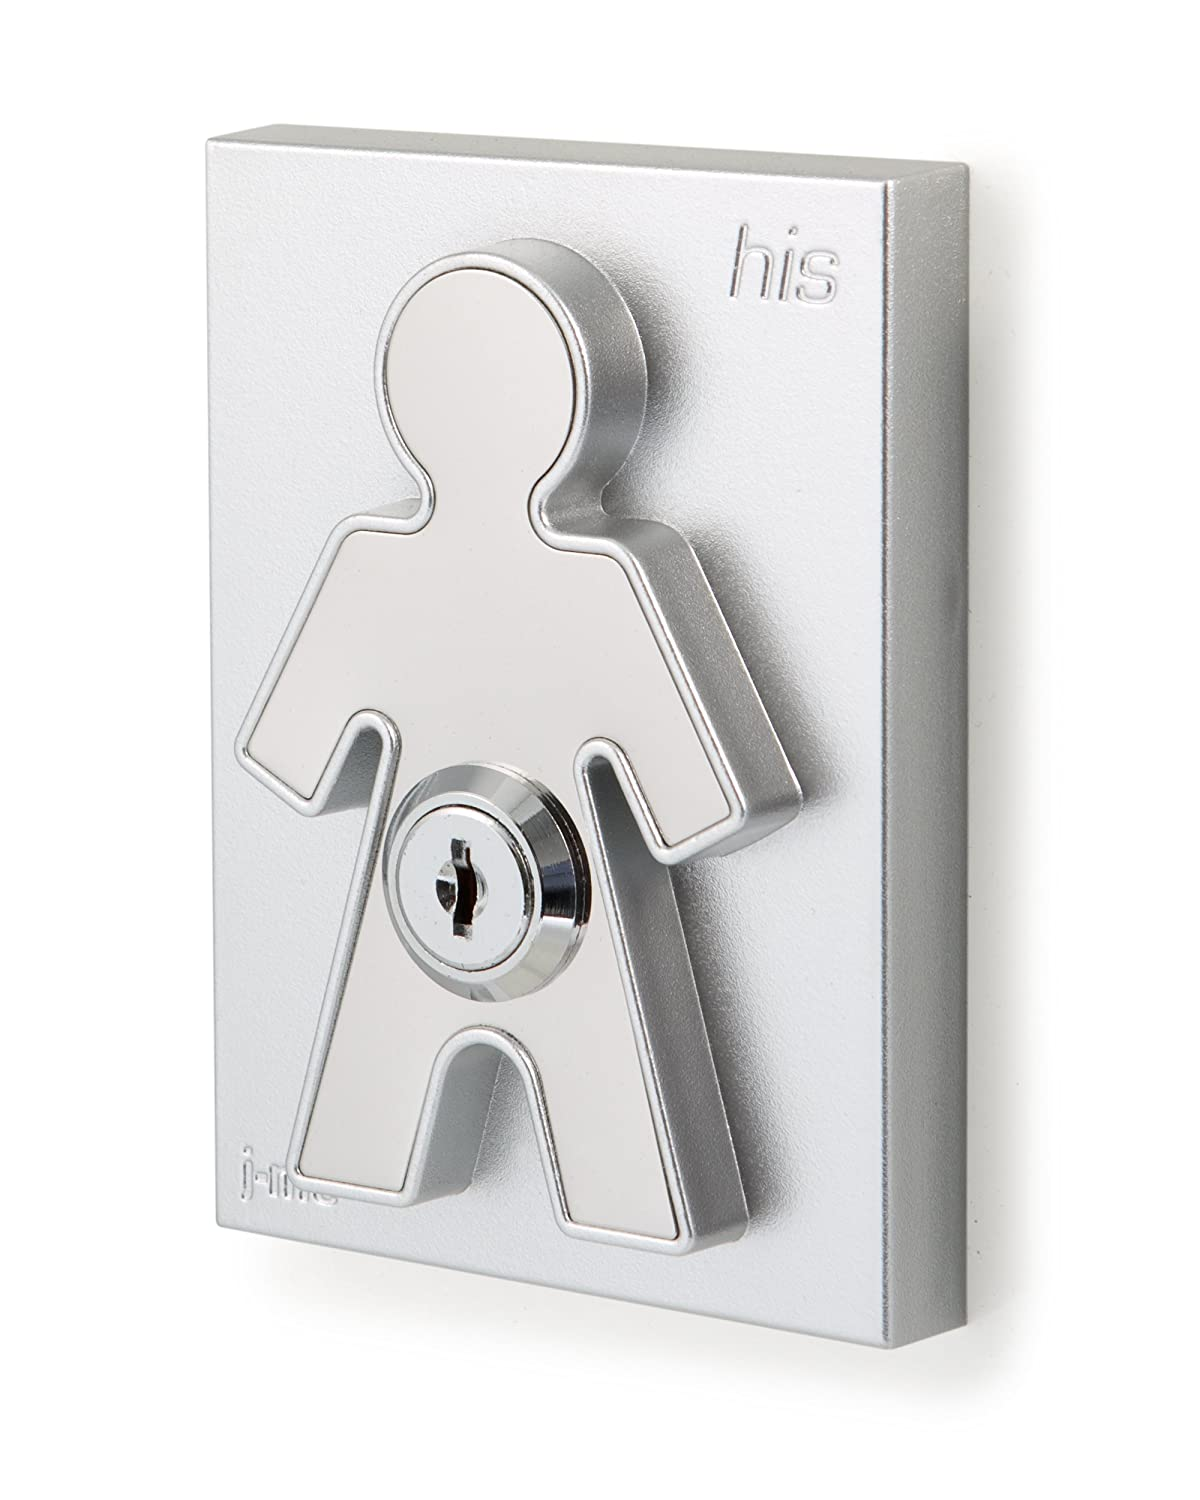 Amazon.com: j-me his keyholder - Wall Mounted Key Organizer Will